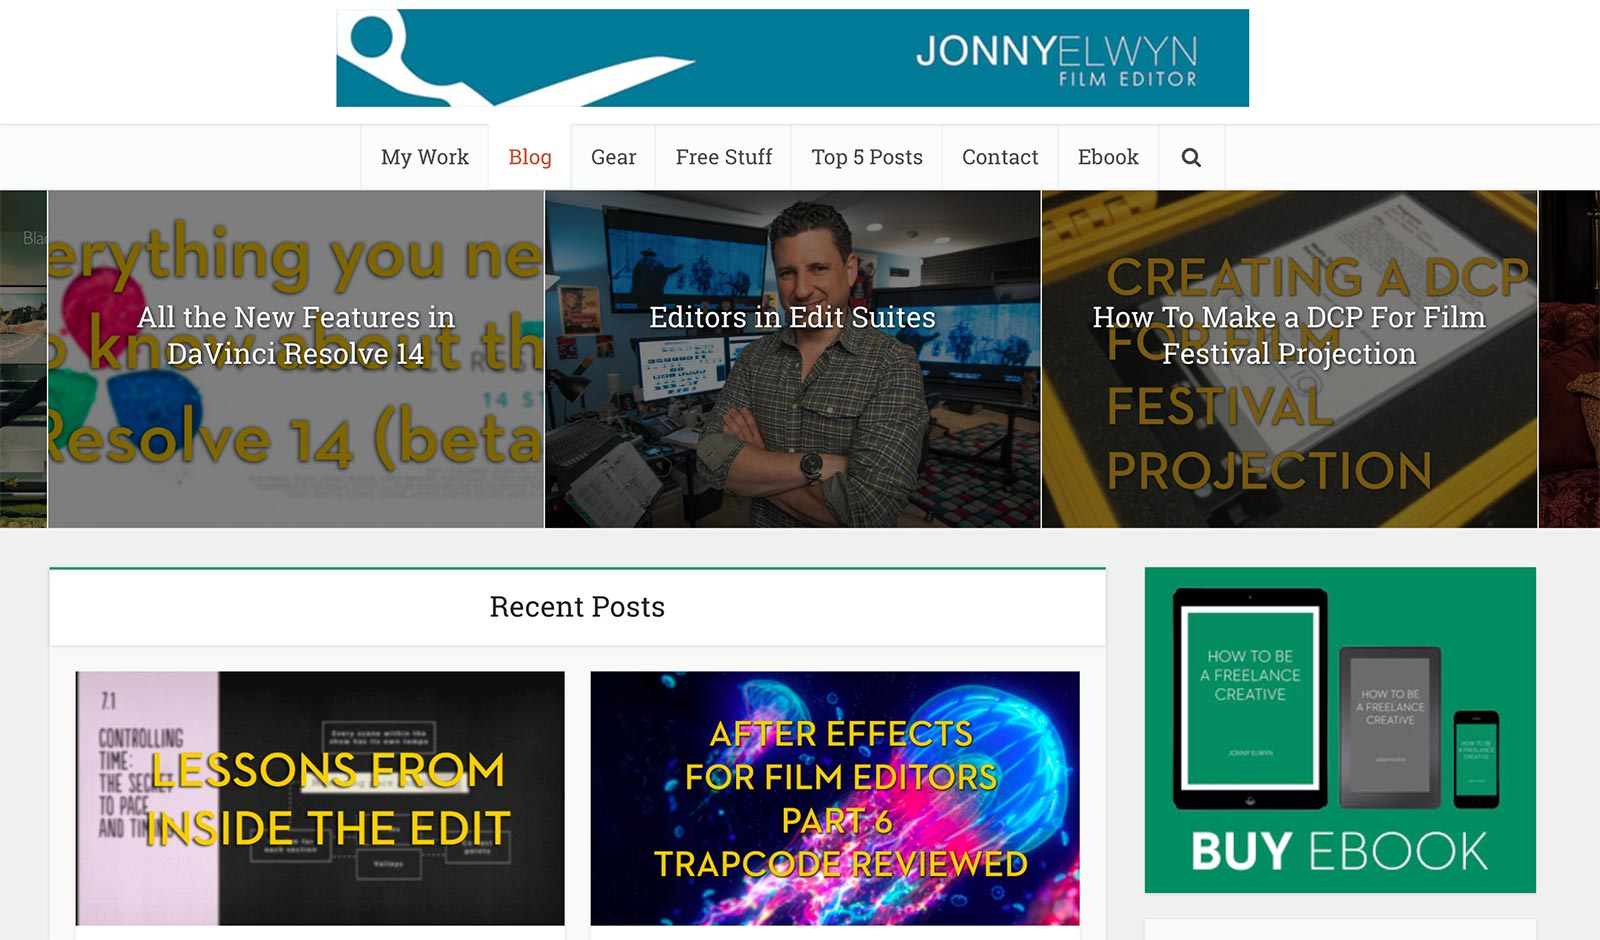 jonny elwyn website